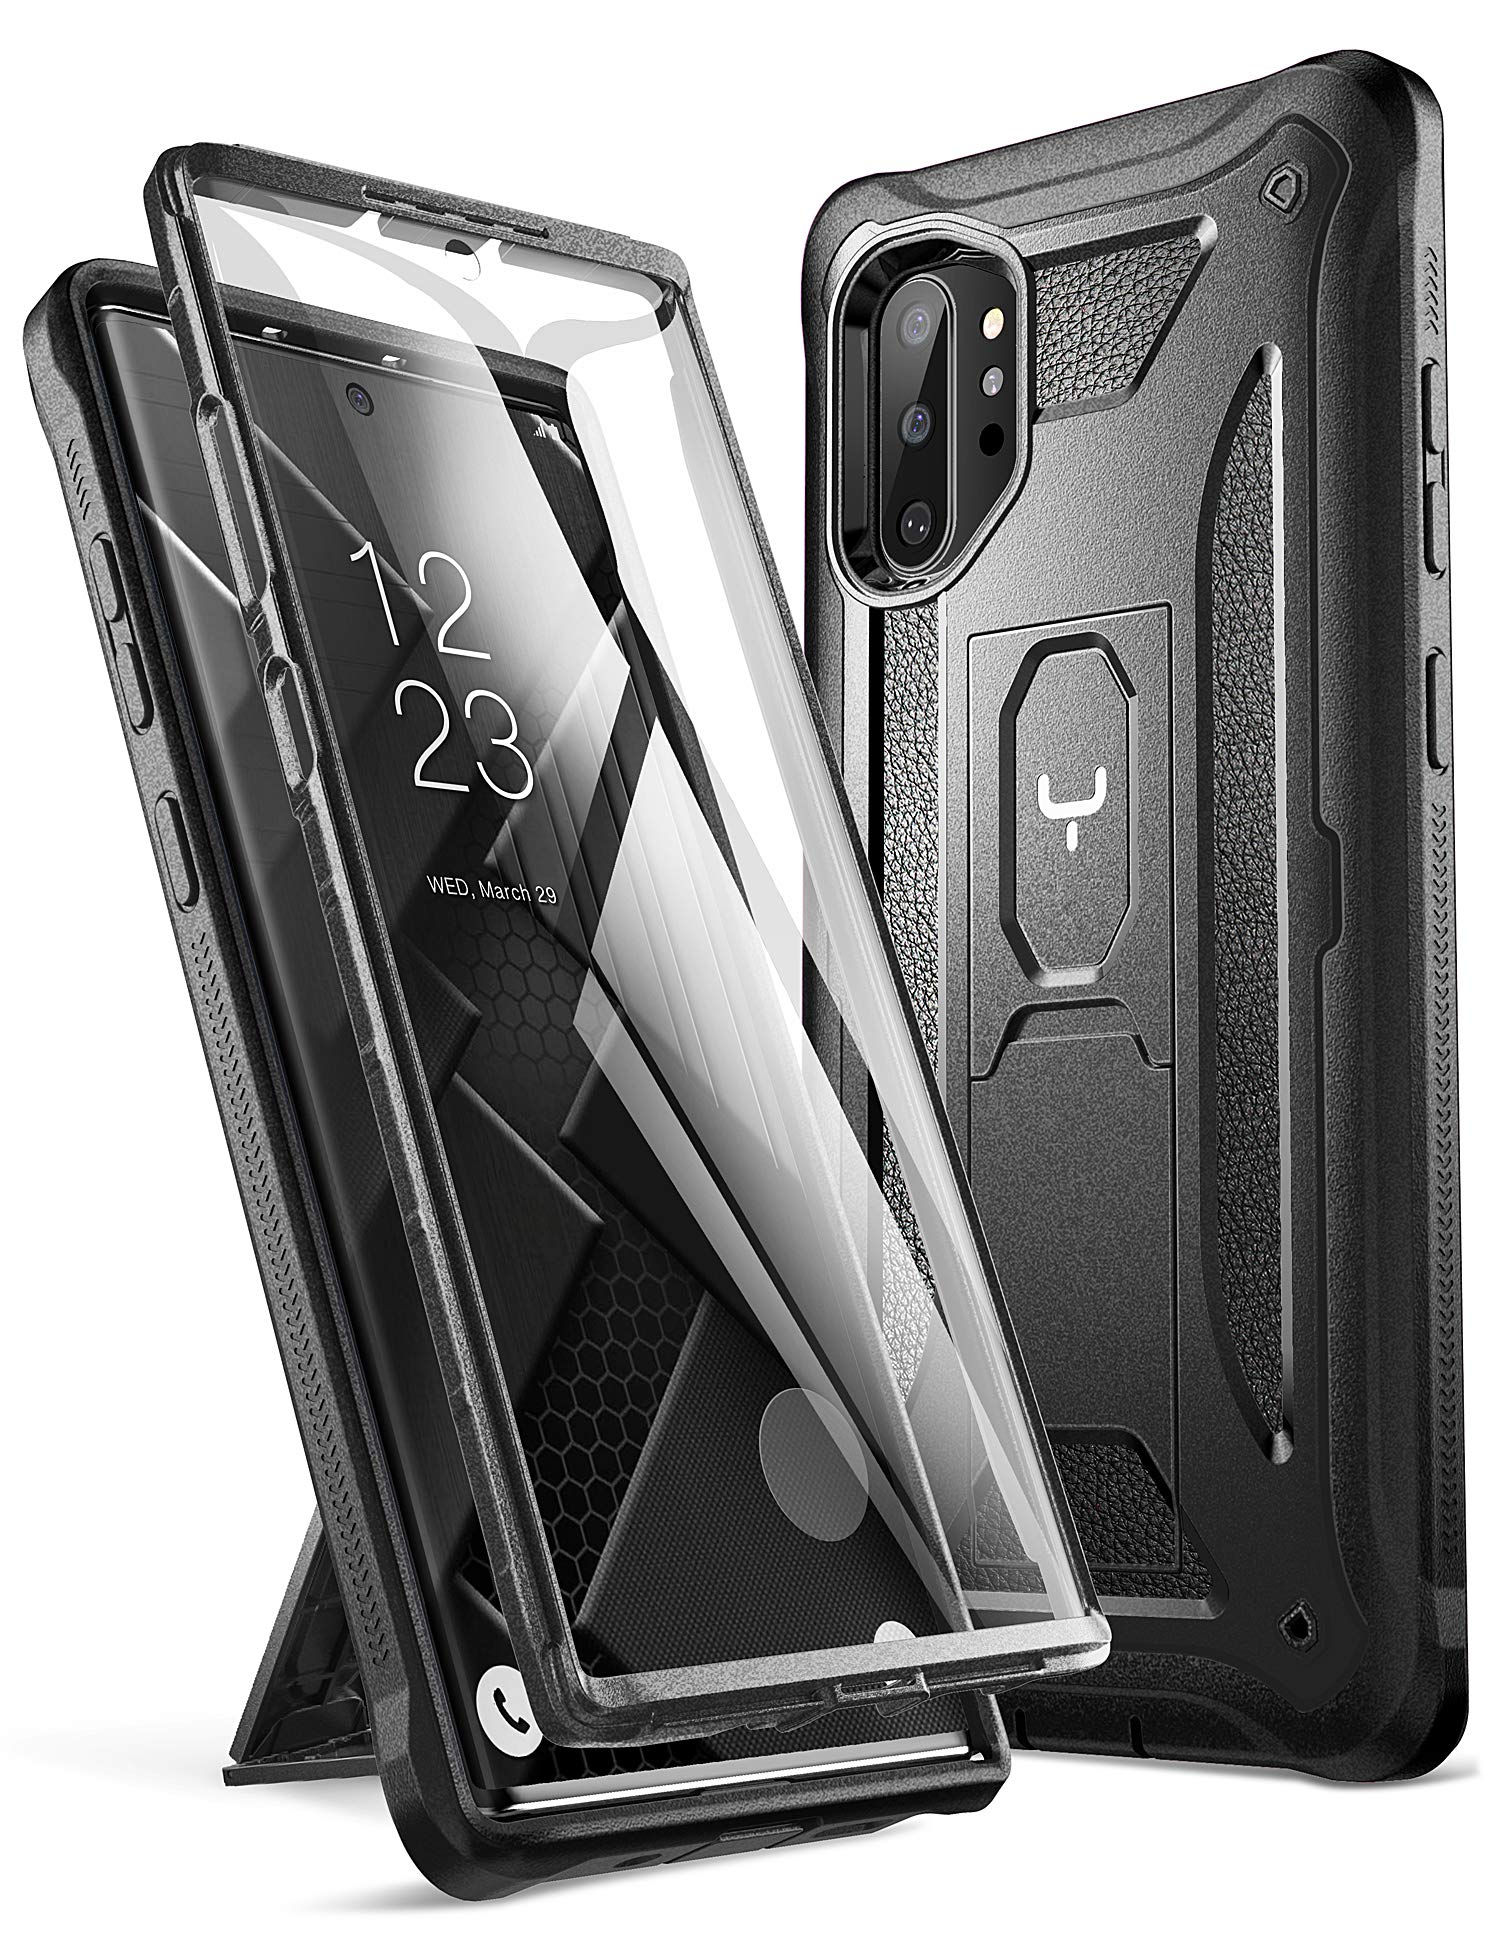 YOUMAKER Case for Galaxy Note 10 Plus, Built-in Screen Protector Work with Fingerprint ID Kickstand Full Body Heavy Duty Shockproof Cover for Samsung Galaxy Note 10 Plus 6.8 Inch (2019) - Black by YOUMAKER